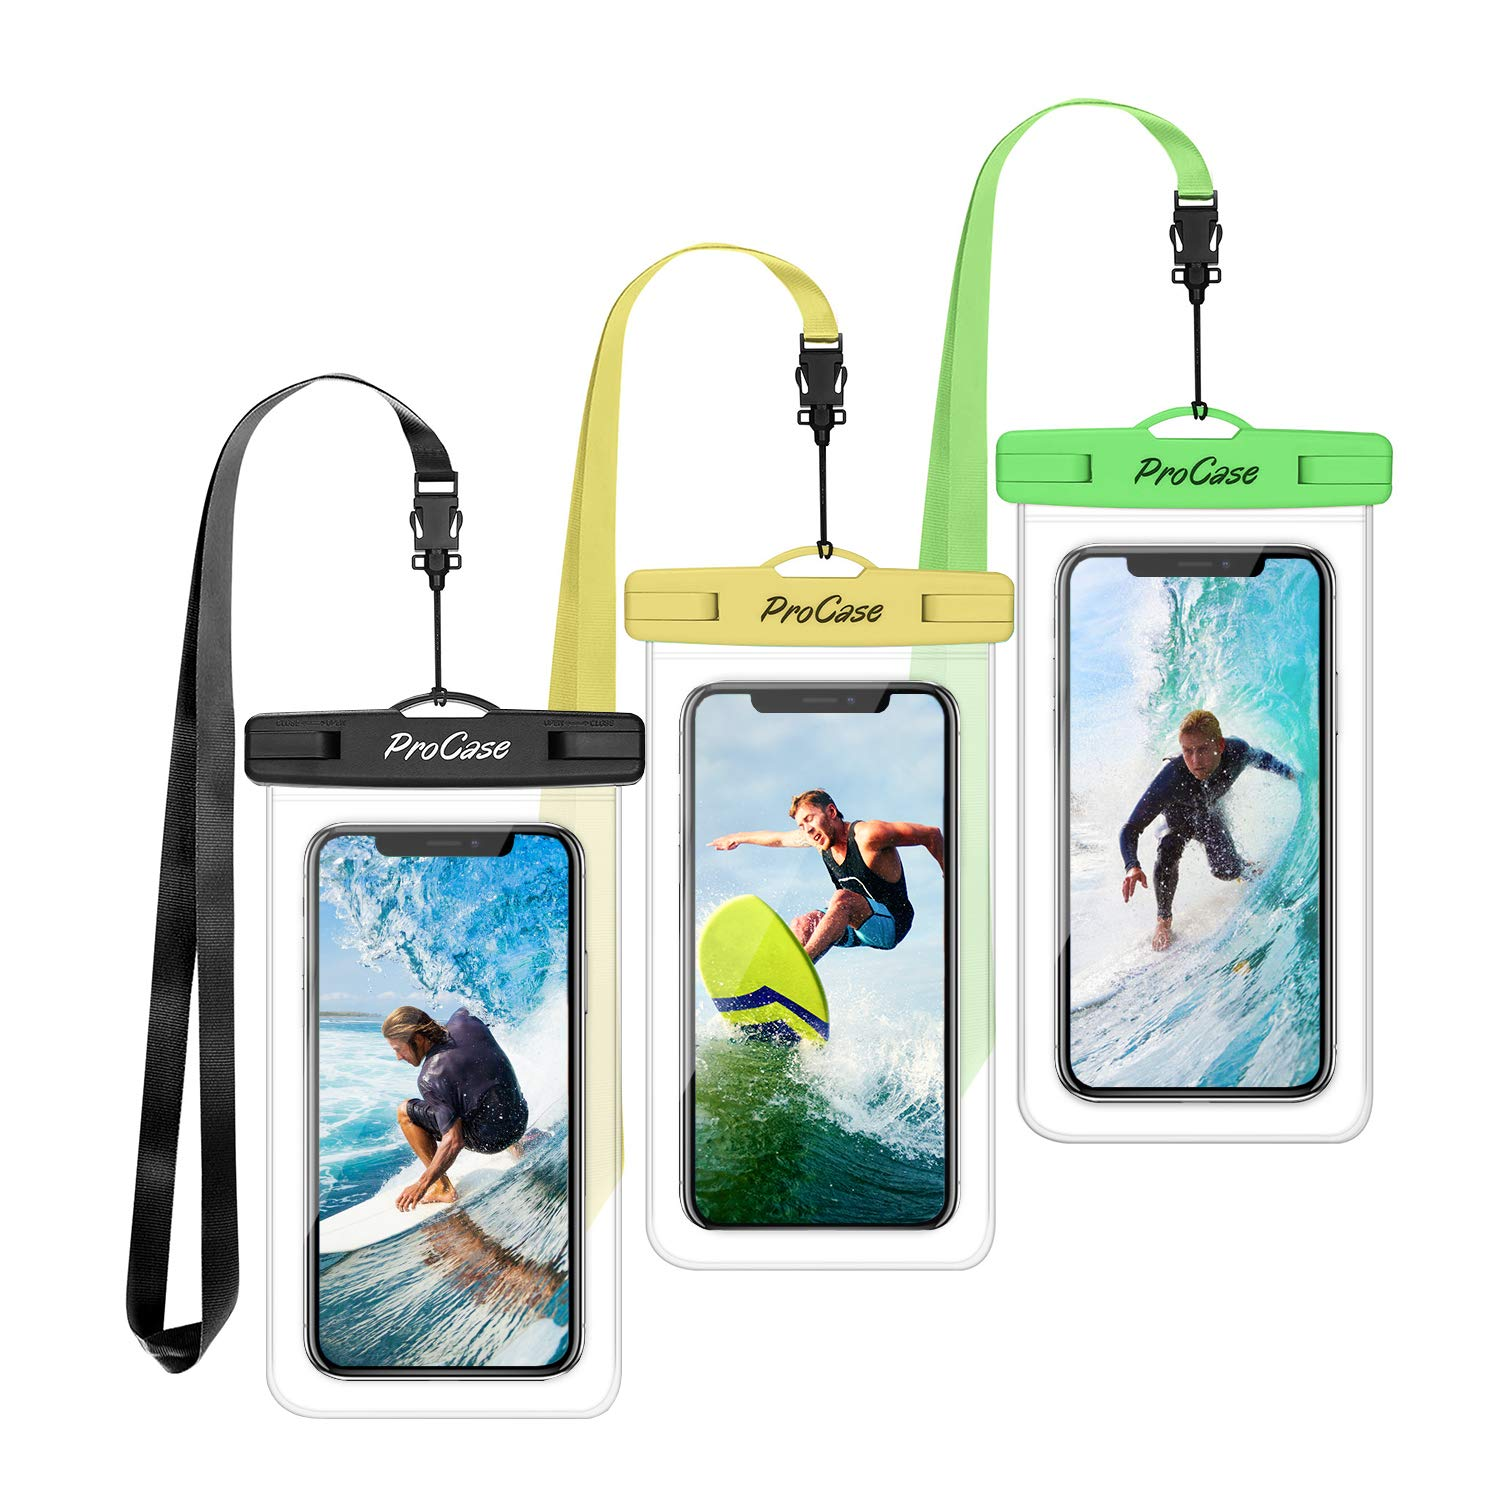 ProCase Universal Waterproof Pouch Cellphone Dry Bag Underwater Case for iPhone 11 Pro Max/Xs Max/XR/X 8 7 6S Plus, Galaxy Note10+ S10 Plus S9 S8+, Pixel 3 2 XL up to 6.8'' -3 Pack, Green/Yellow/Black by ProCase